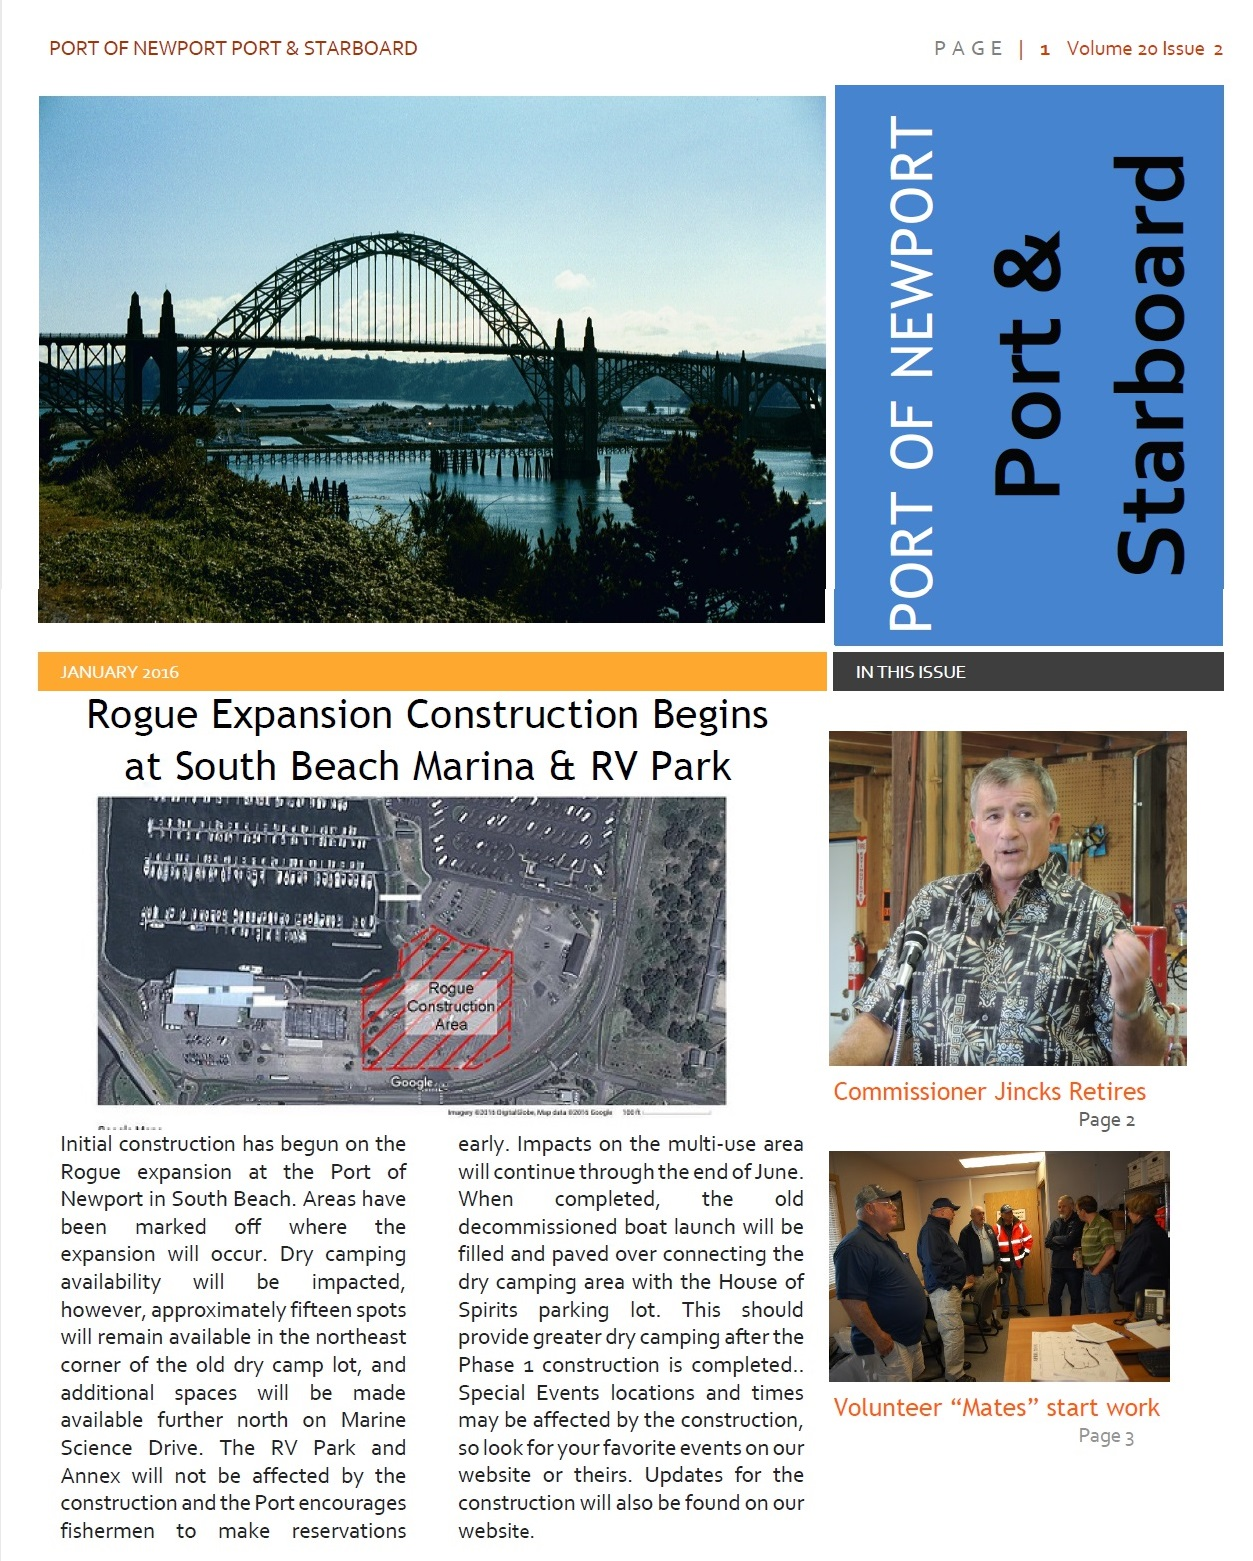 Jun2016 - Port of Newport - Port & Starboard Newsletter Volume 20 Issue 2 online edition 1